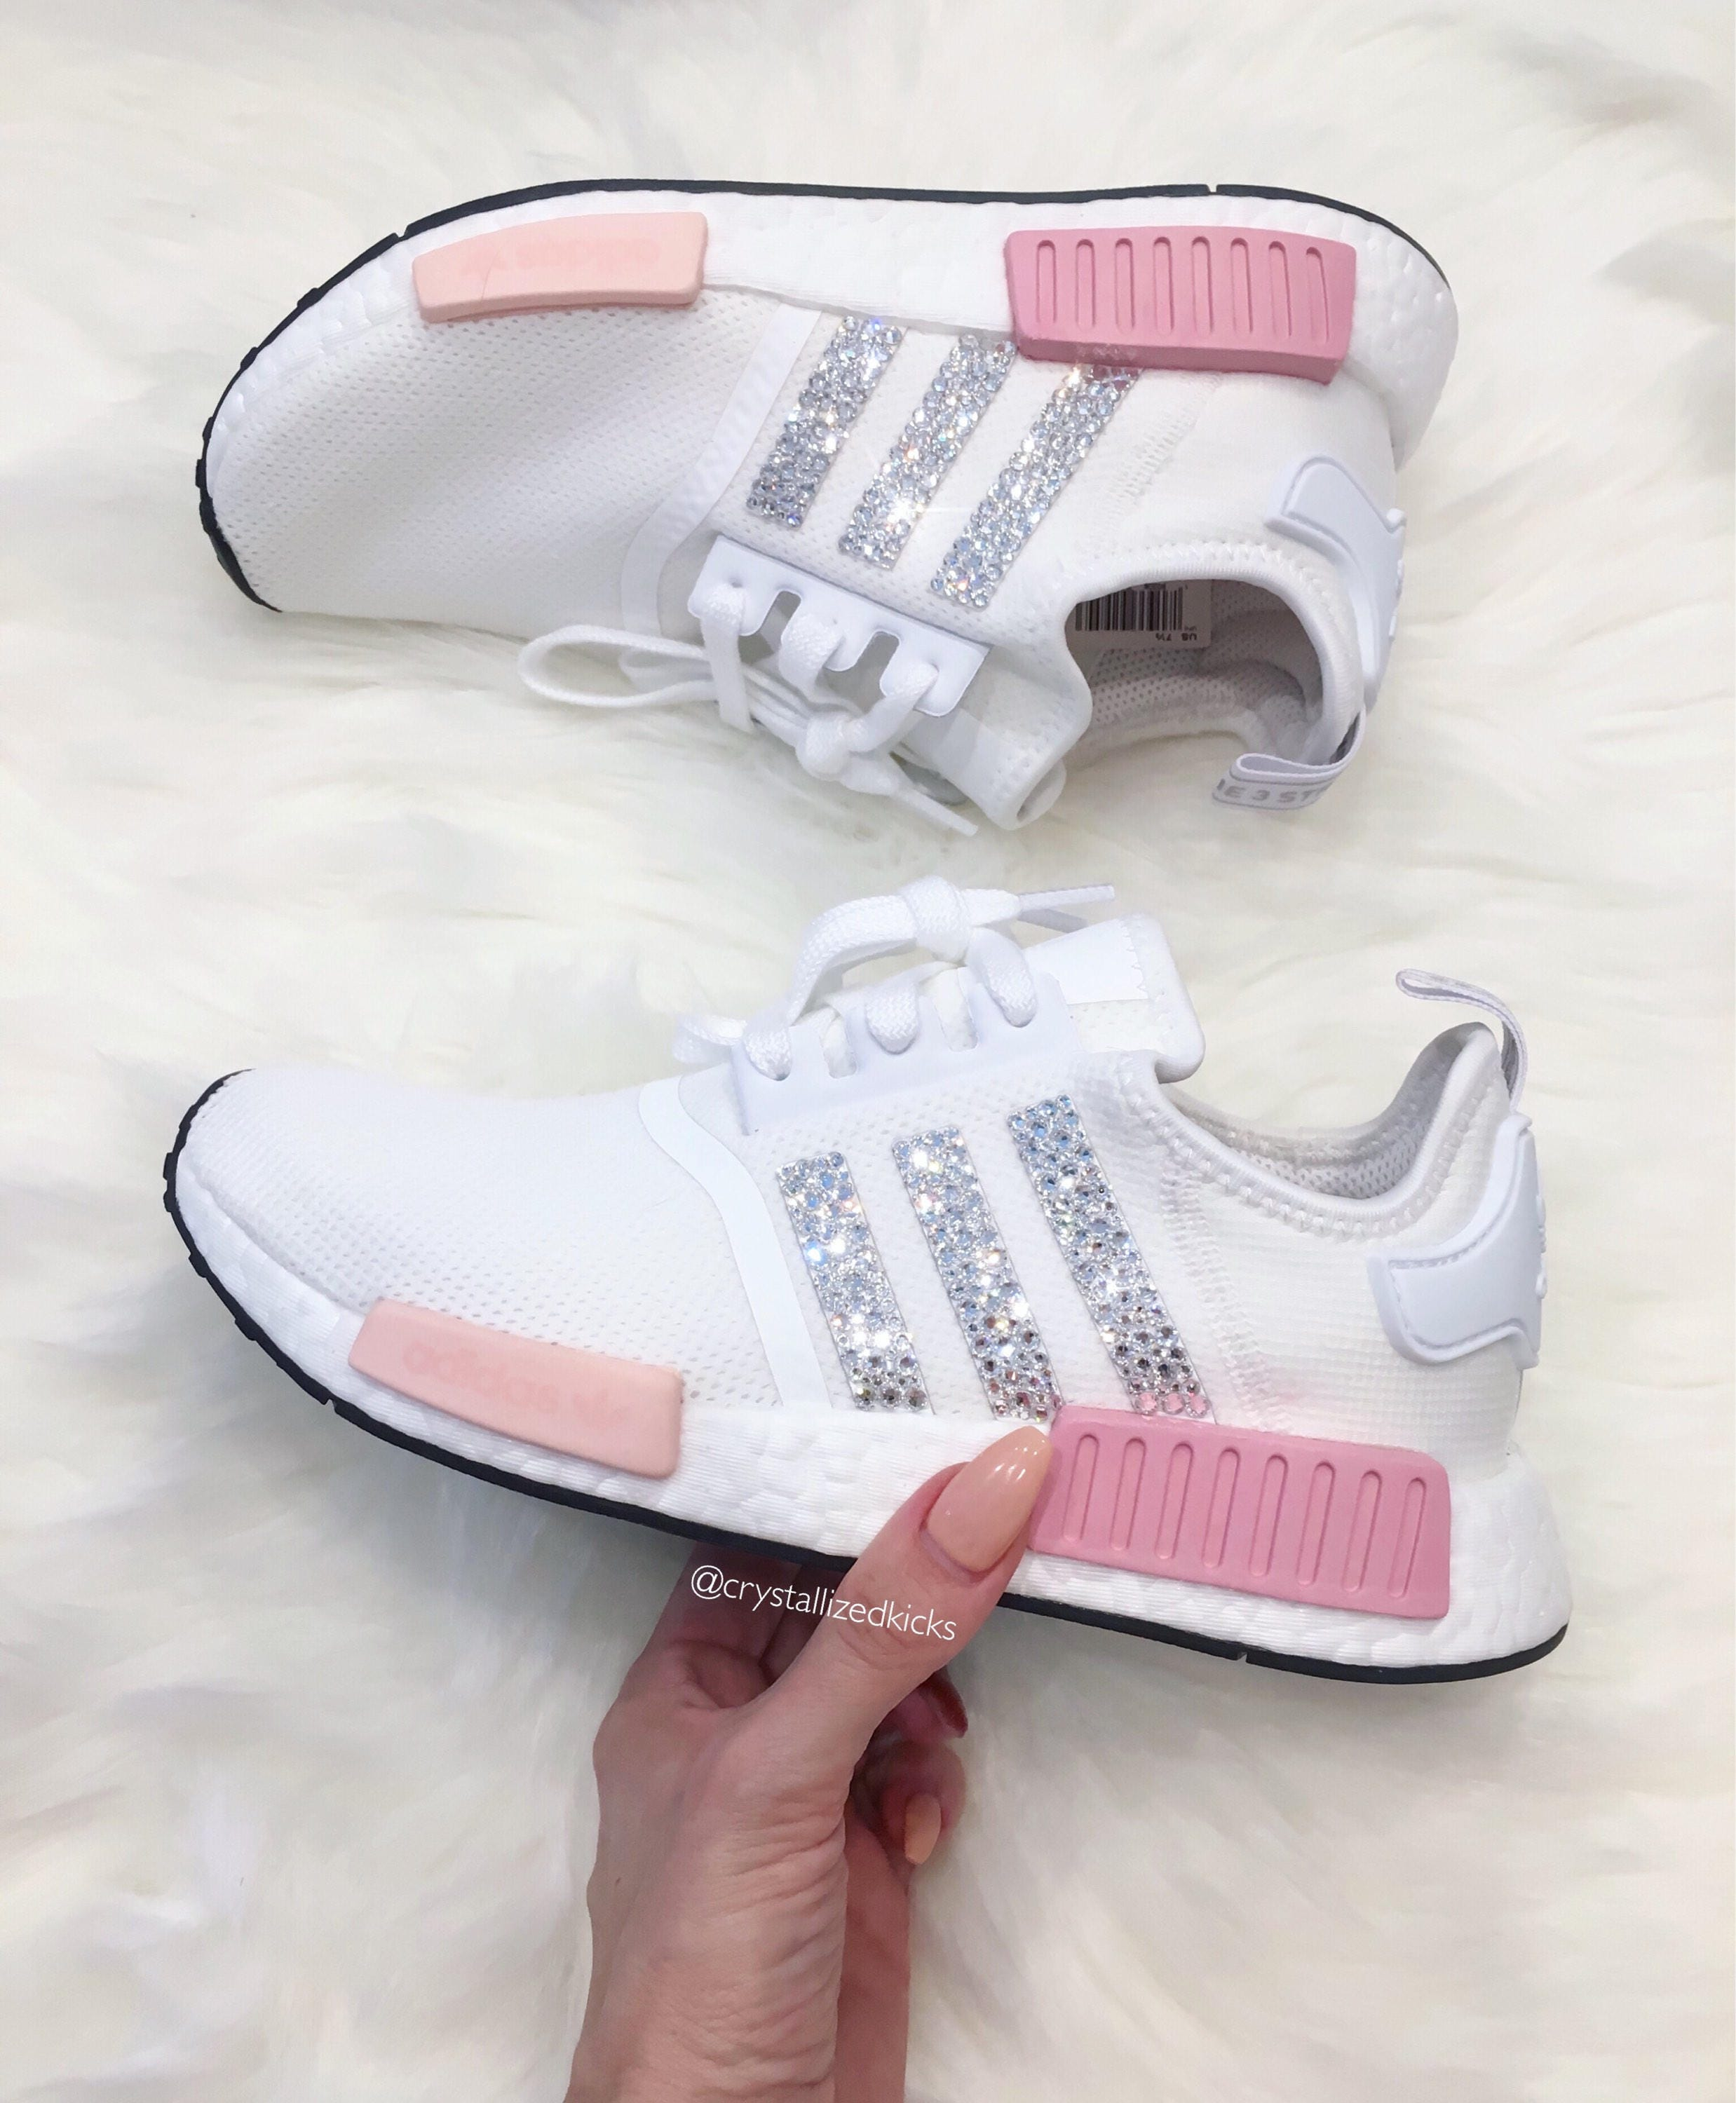 ... greece adidas nmd runner made with swarovski xirius rose crystals 100f8  de5b9 9e11da6f4